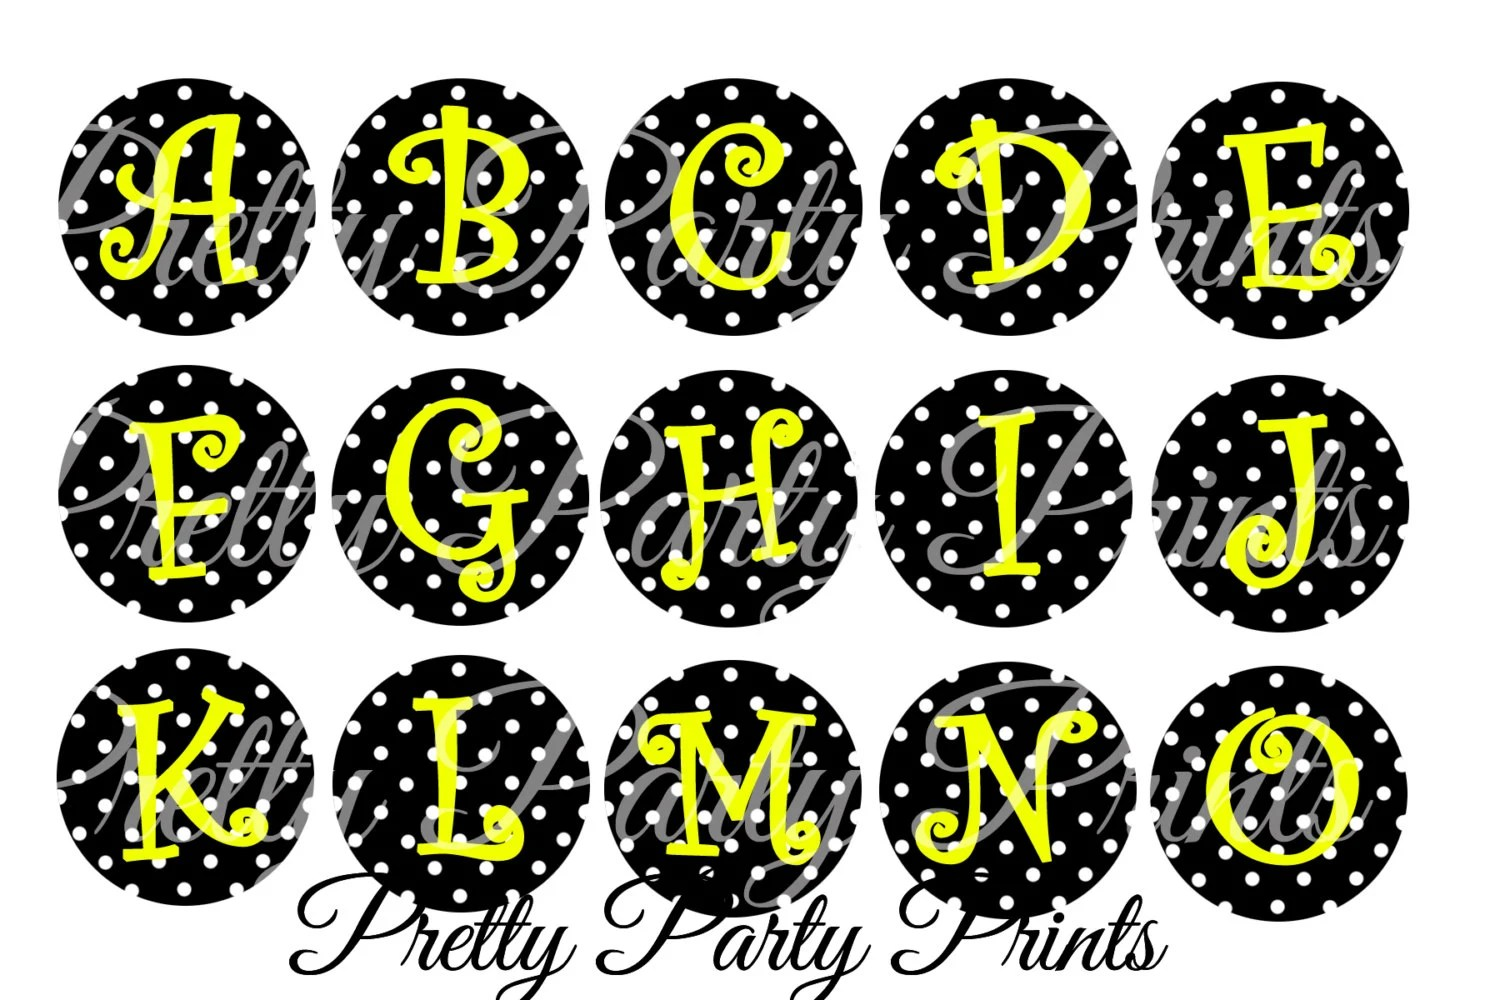 Instant Download Polka Dot Bumblebee Alphabet 1 Inch Round Circles For Bottle Caps Hair Bows